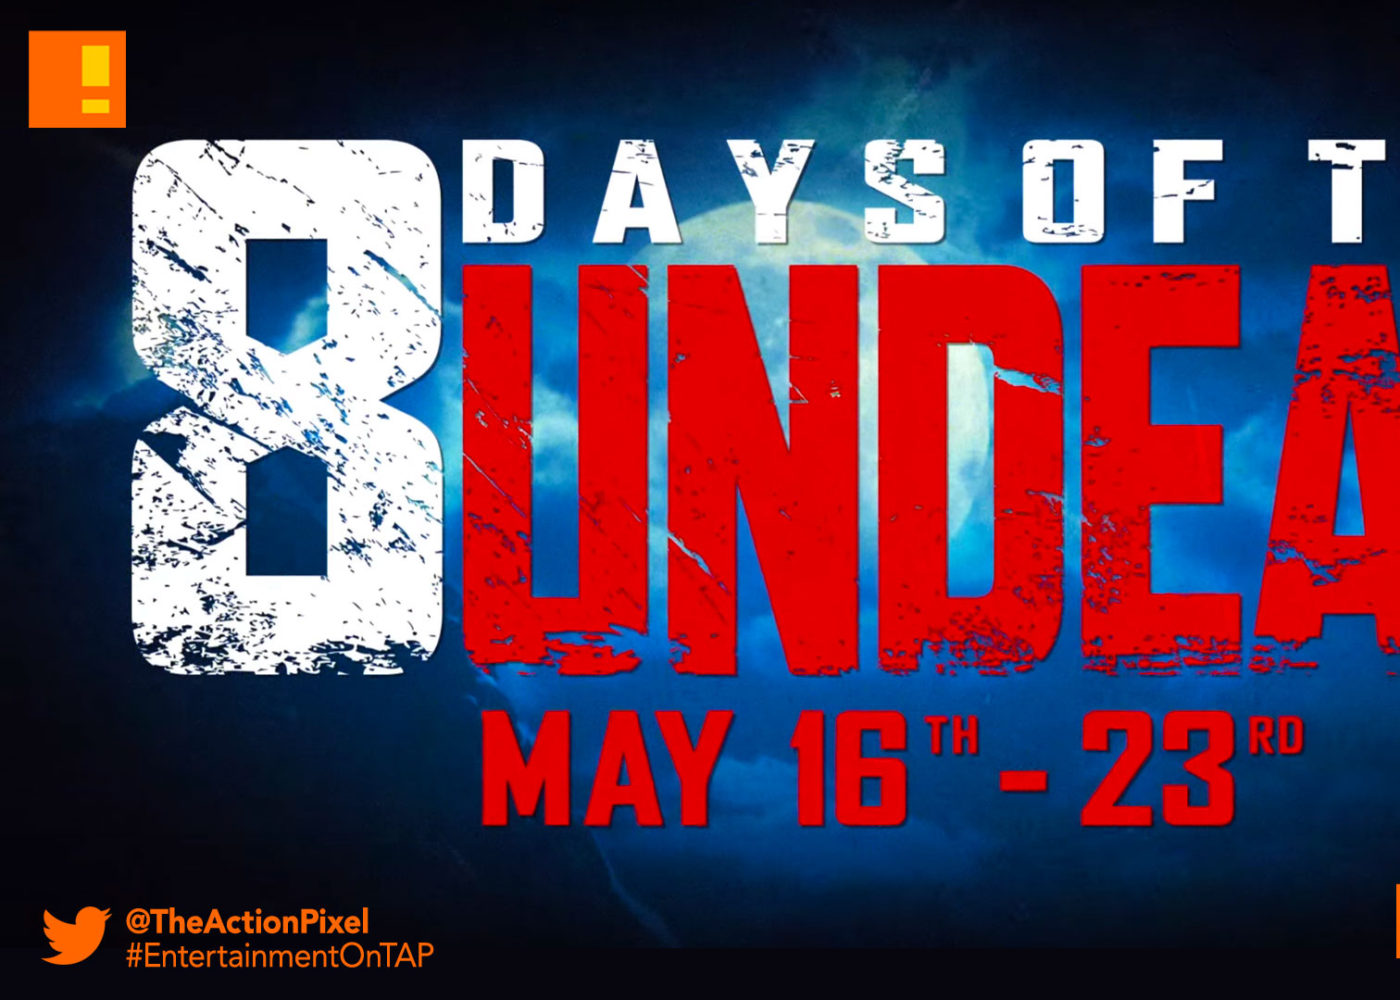 8 days of the undead, cod, call of duty, bo3, black ops 3, call of duty: black ops 3 ,zombies, bo3 zombies, the action pixel, entertainment on tap,